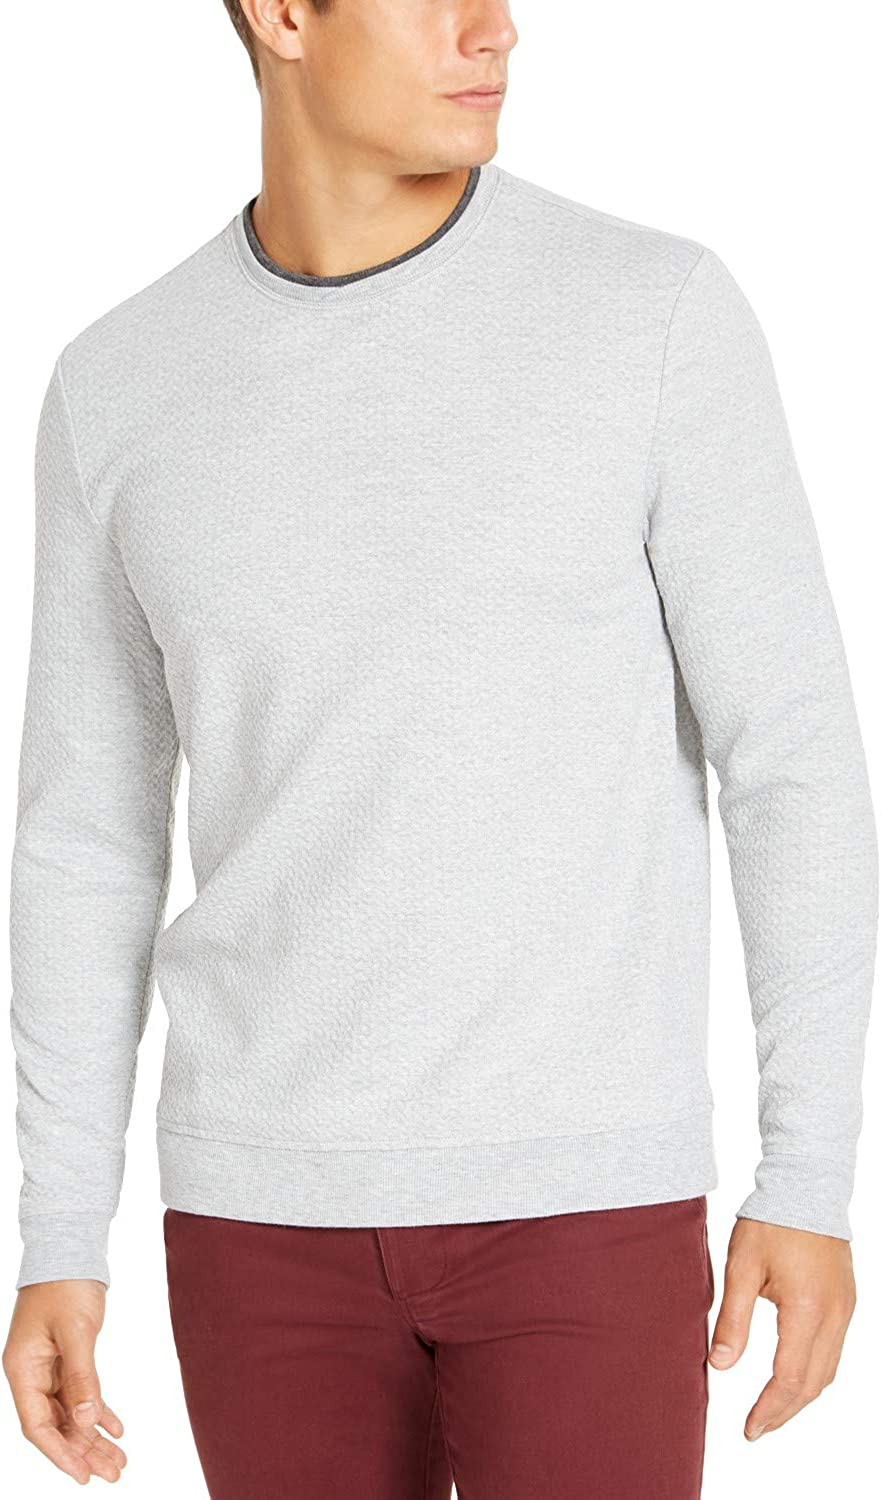 Tasso Elba Double Crewneck Pullover Sweater - Sterling Heather- Large Grey